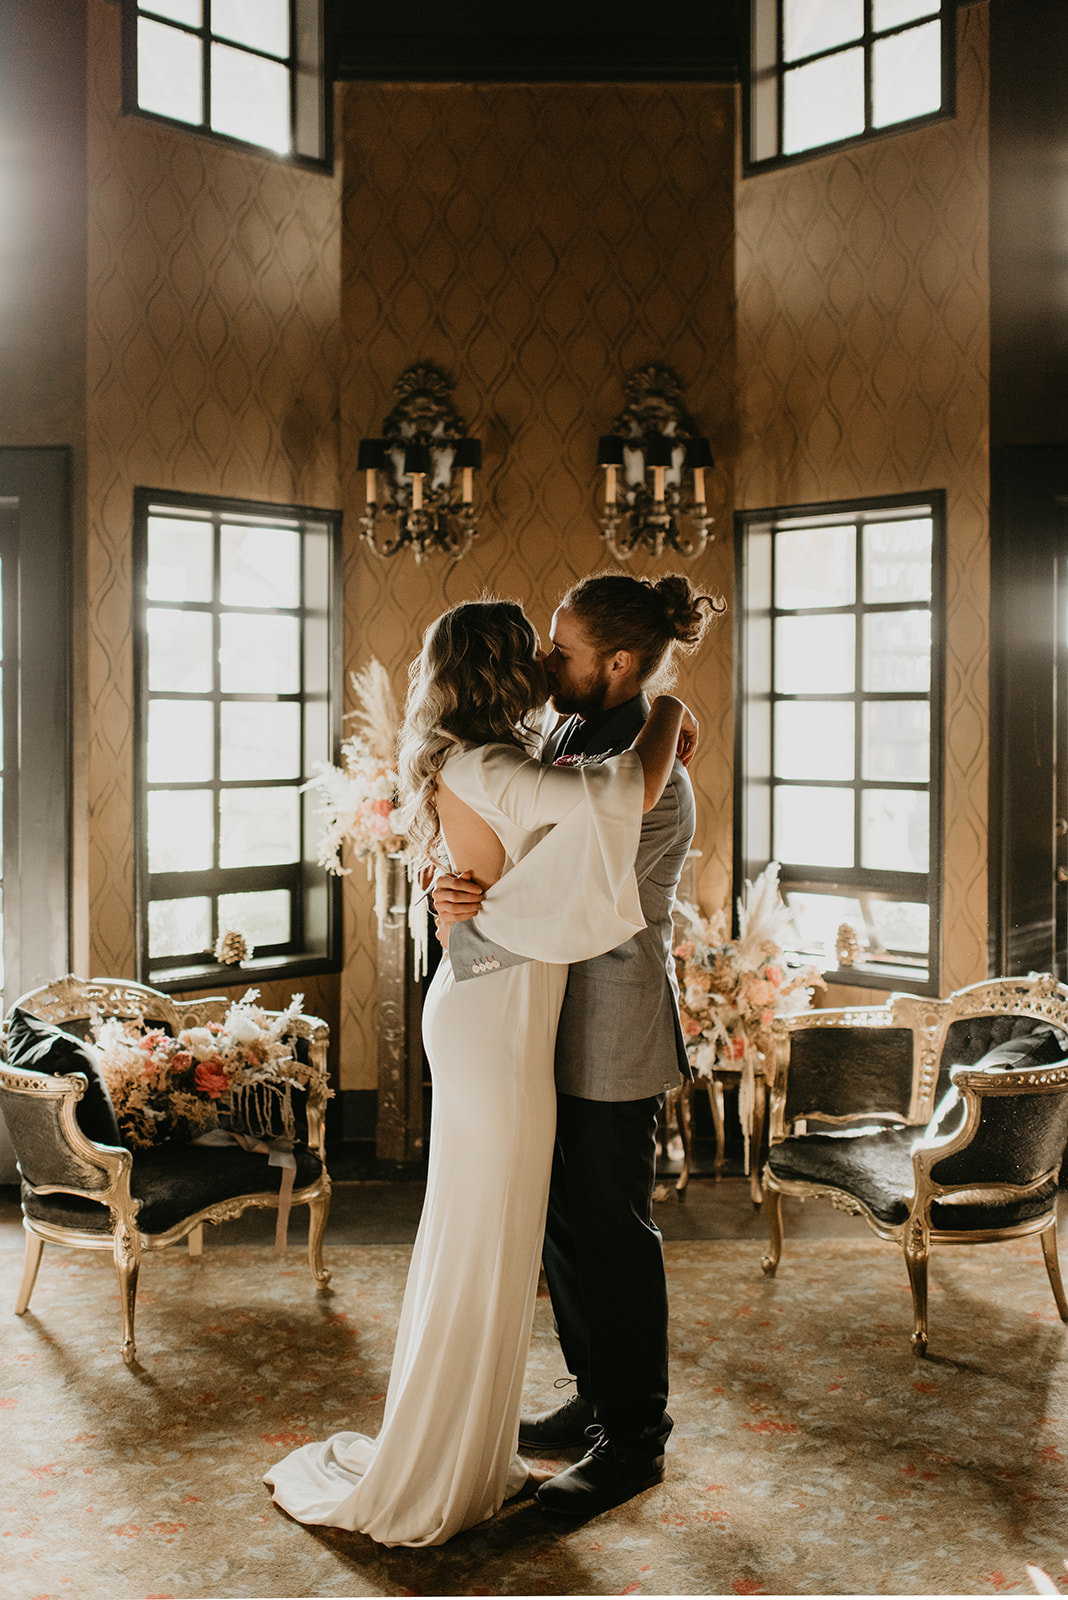 Britty + Beau - Elopement - The Ruins_ Seattle_ WA - Kamra Fuller Photography - Runaway With Me Elopement Collective-116